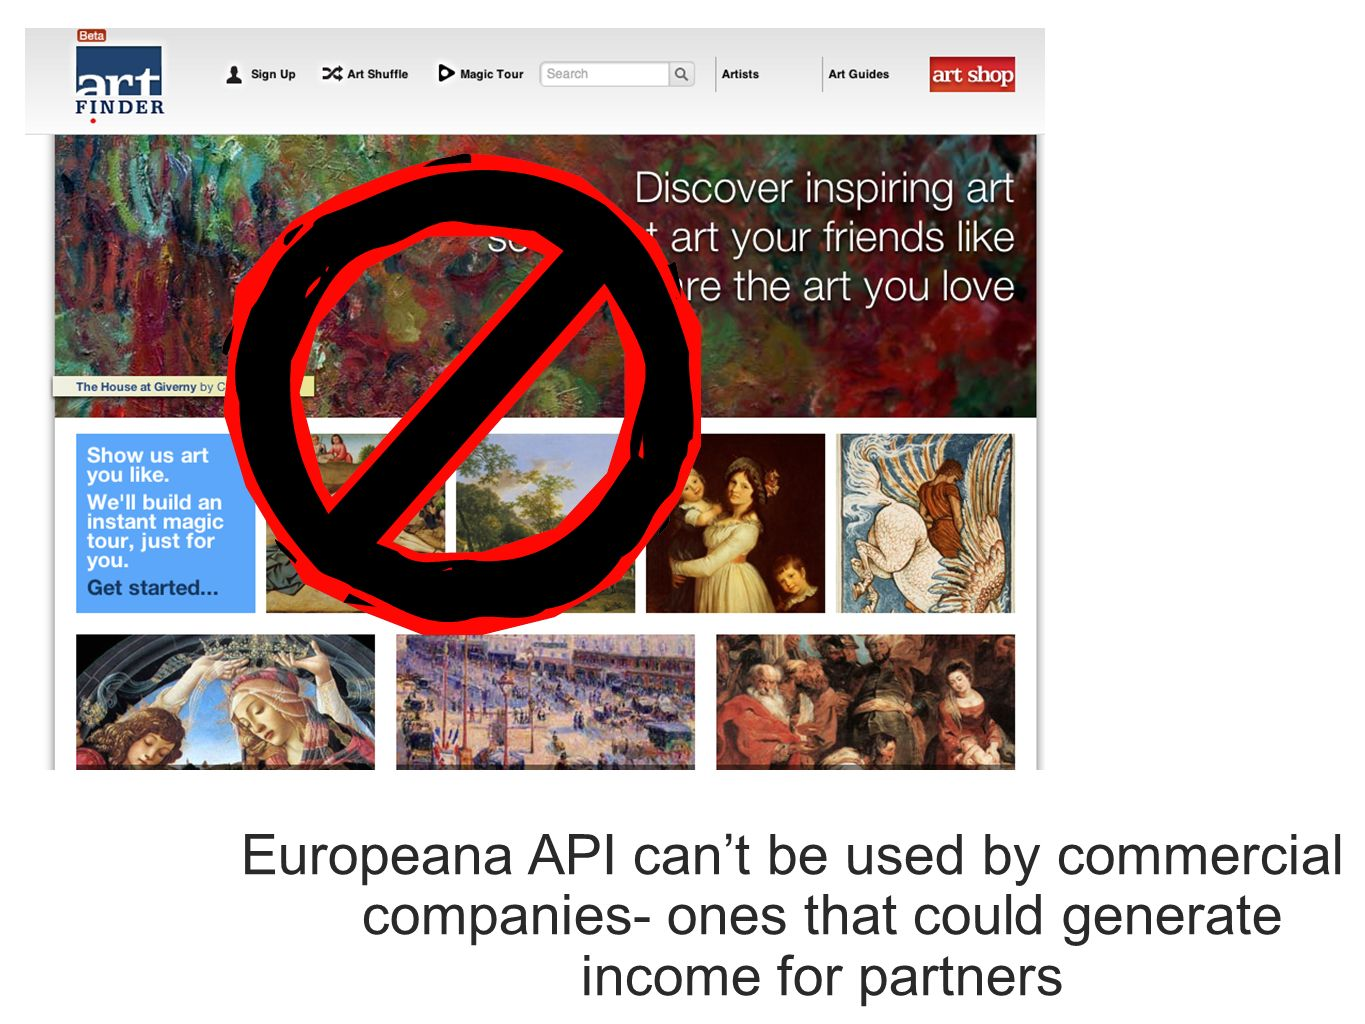 Europeana API cant be used by commercial companies- ones that could generate income for partners